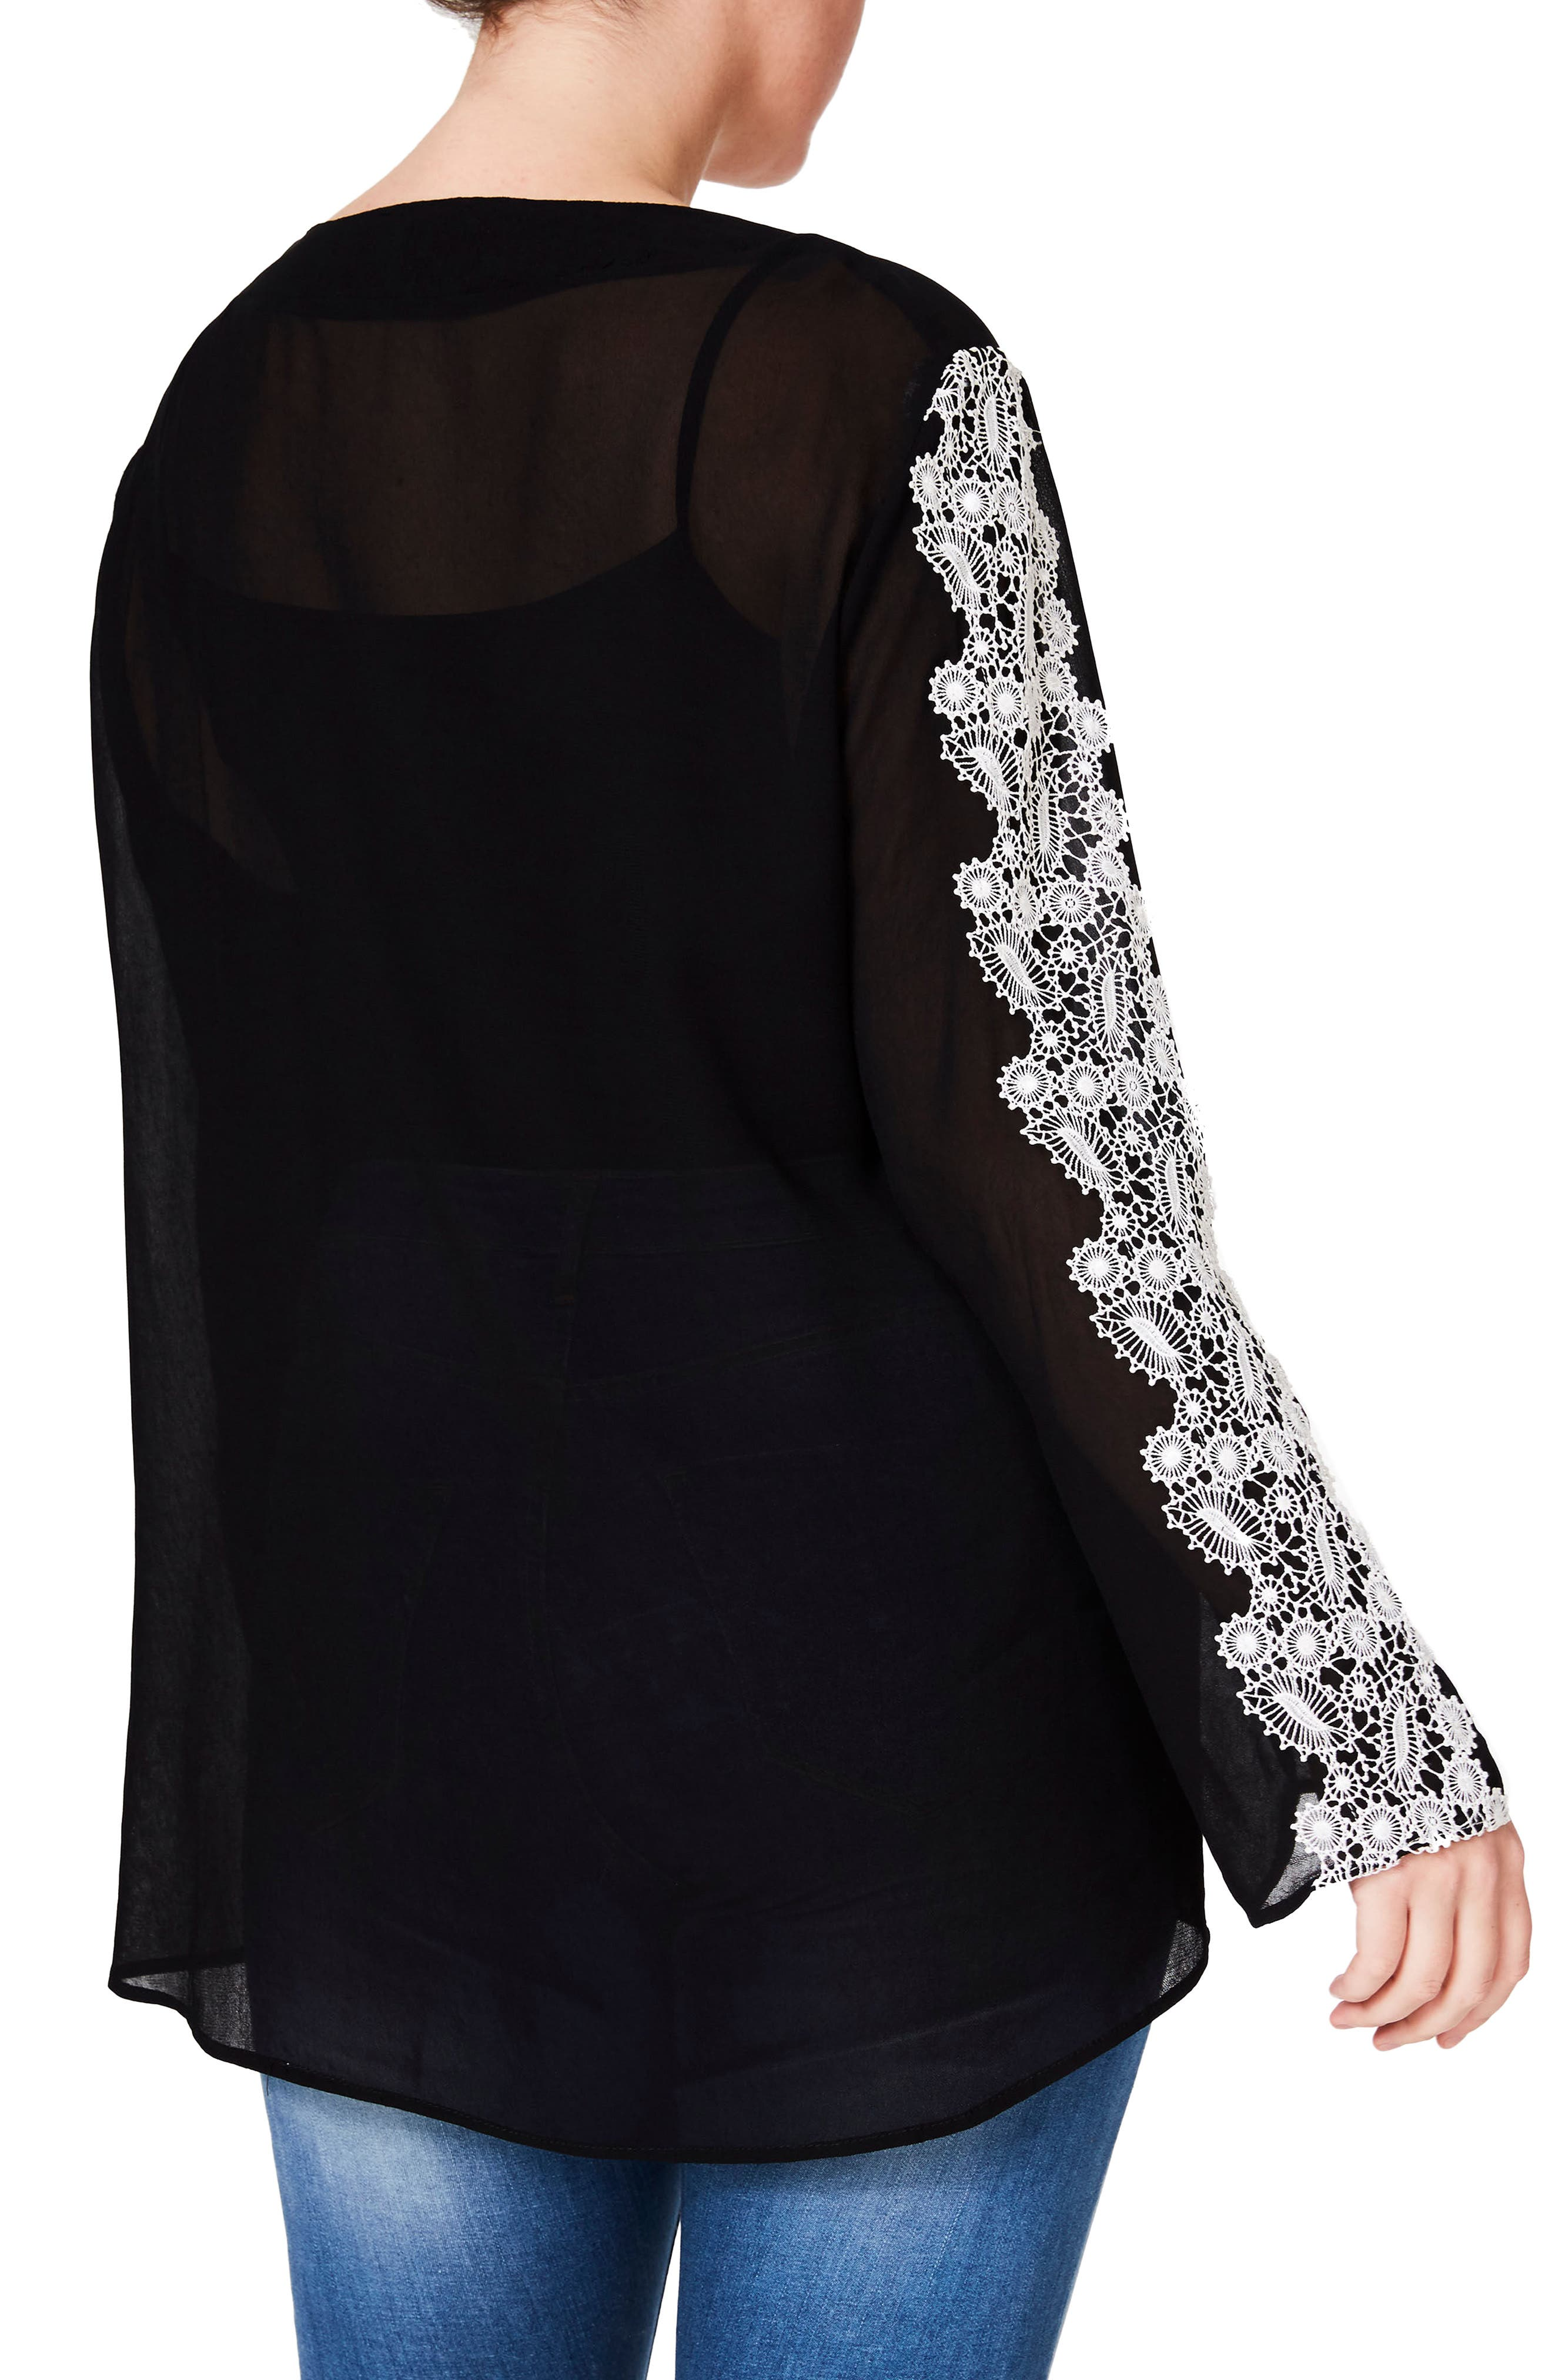 Embroidered Sleeve Blouse,                             Alternate thumbnail 2, color,                             001